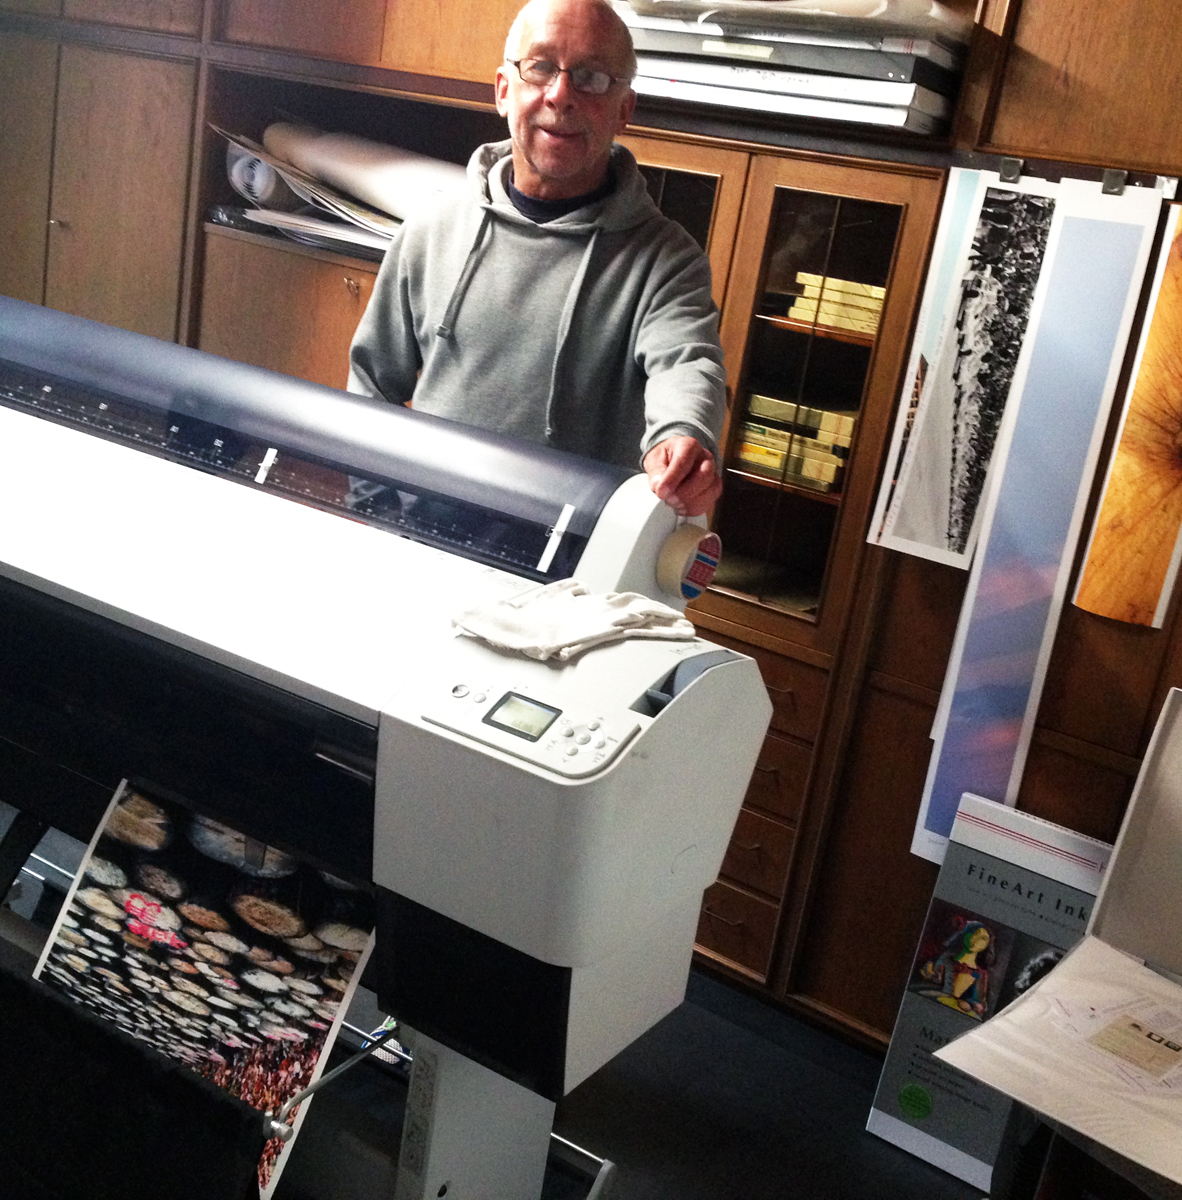 Heinz Pflug, photographer and large format digital print expert, with his massive Epson